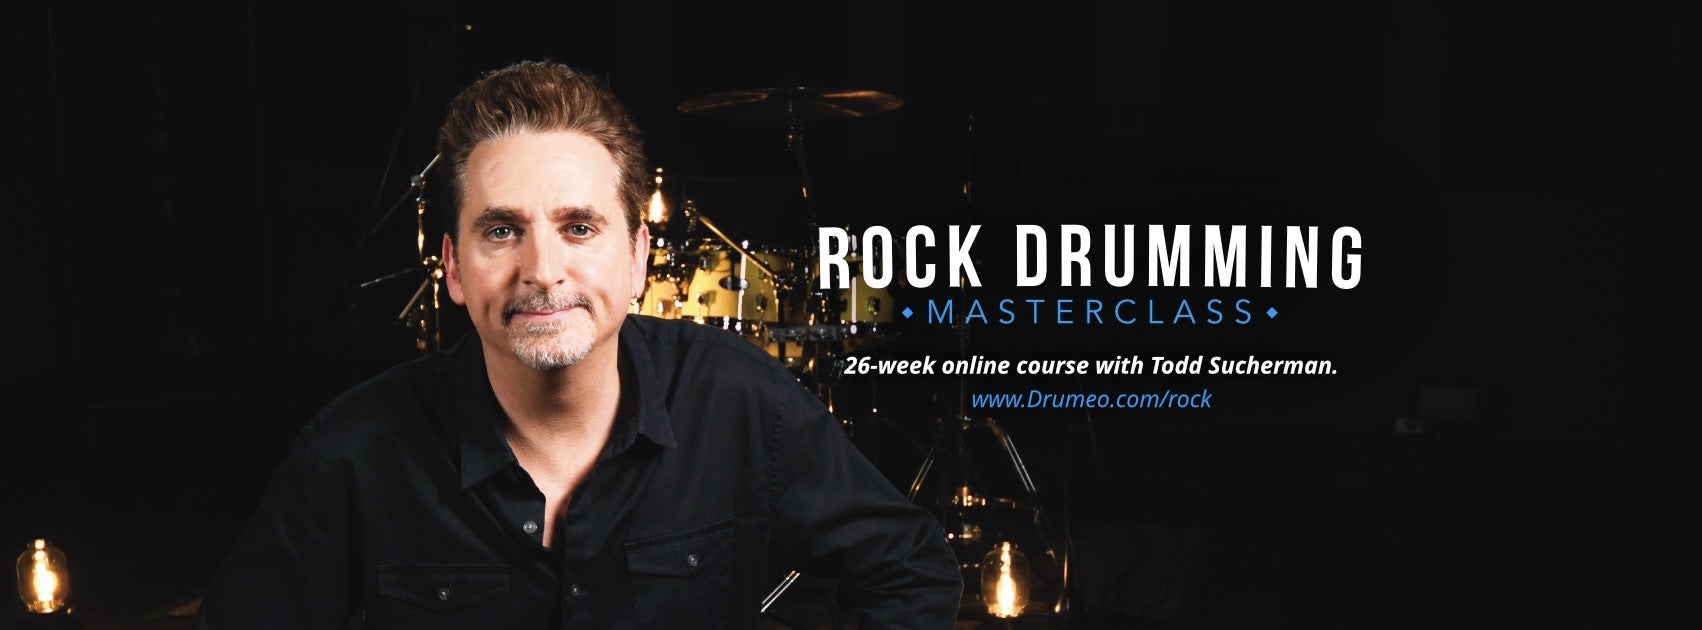 Sign Up Today for Todd Sucherman's Rock Drumming Masterclass! | News